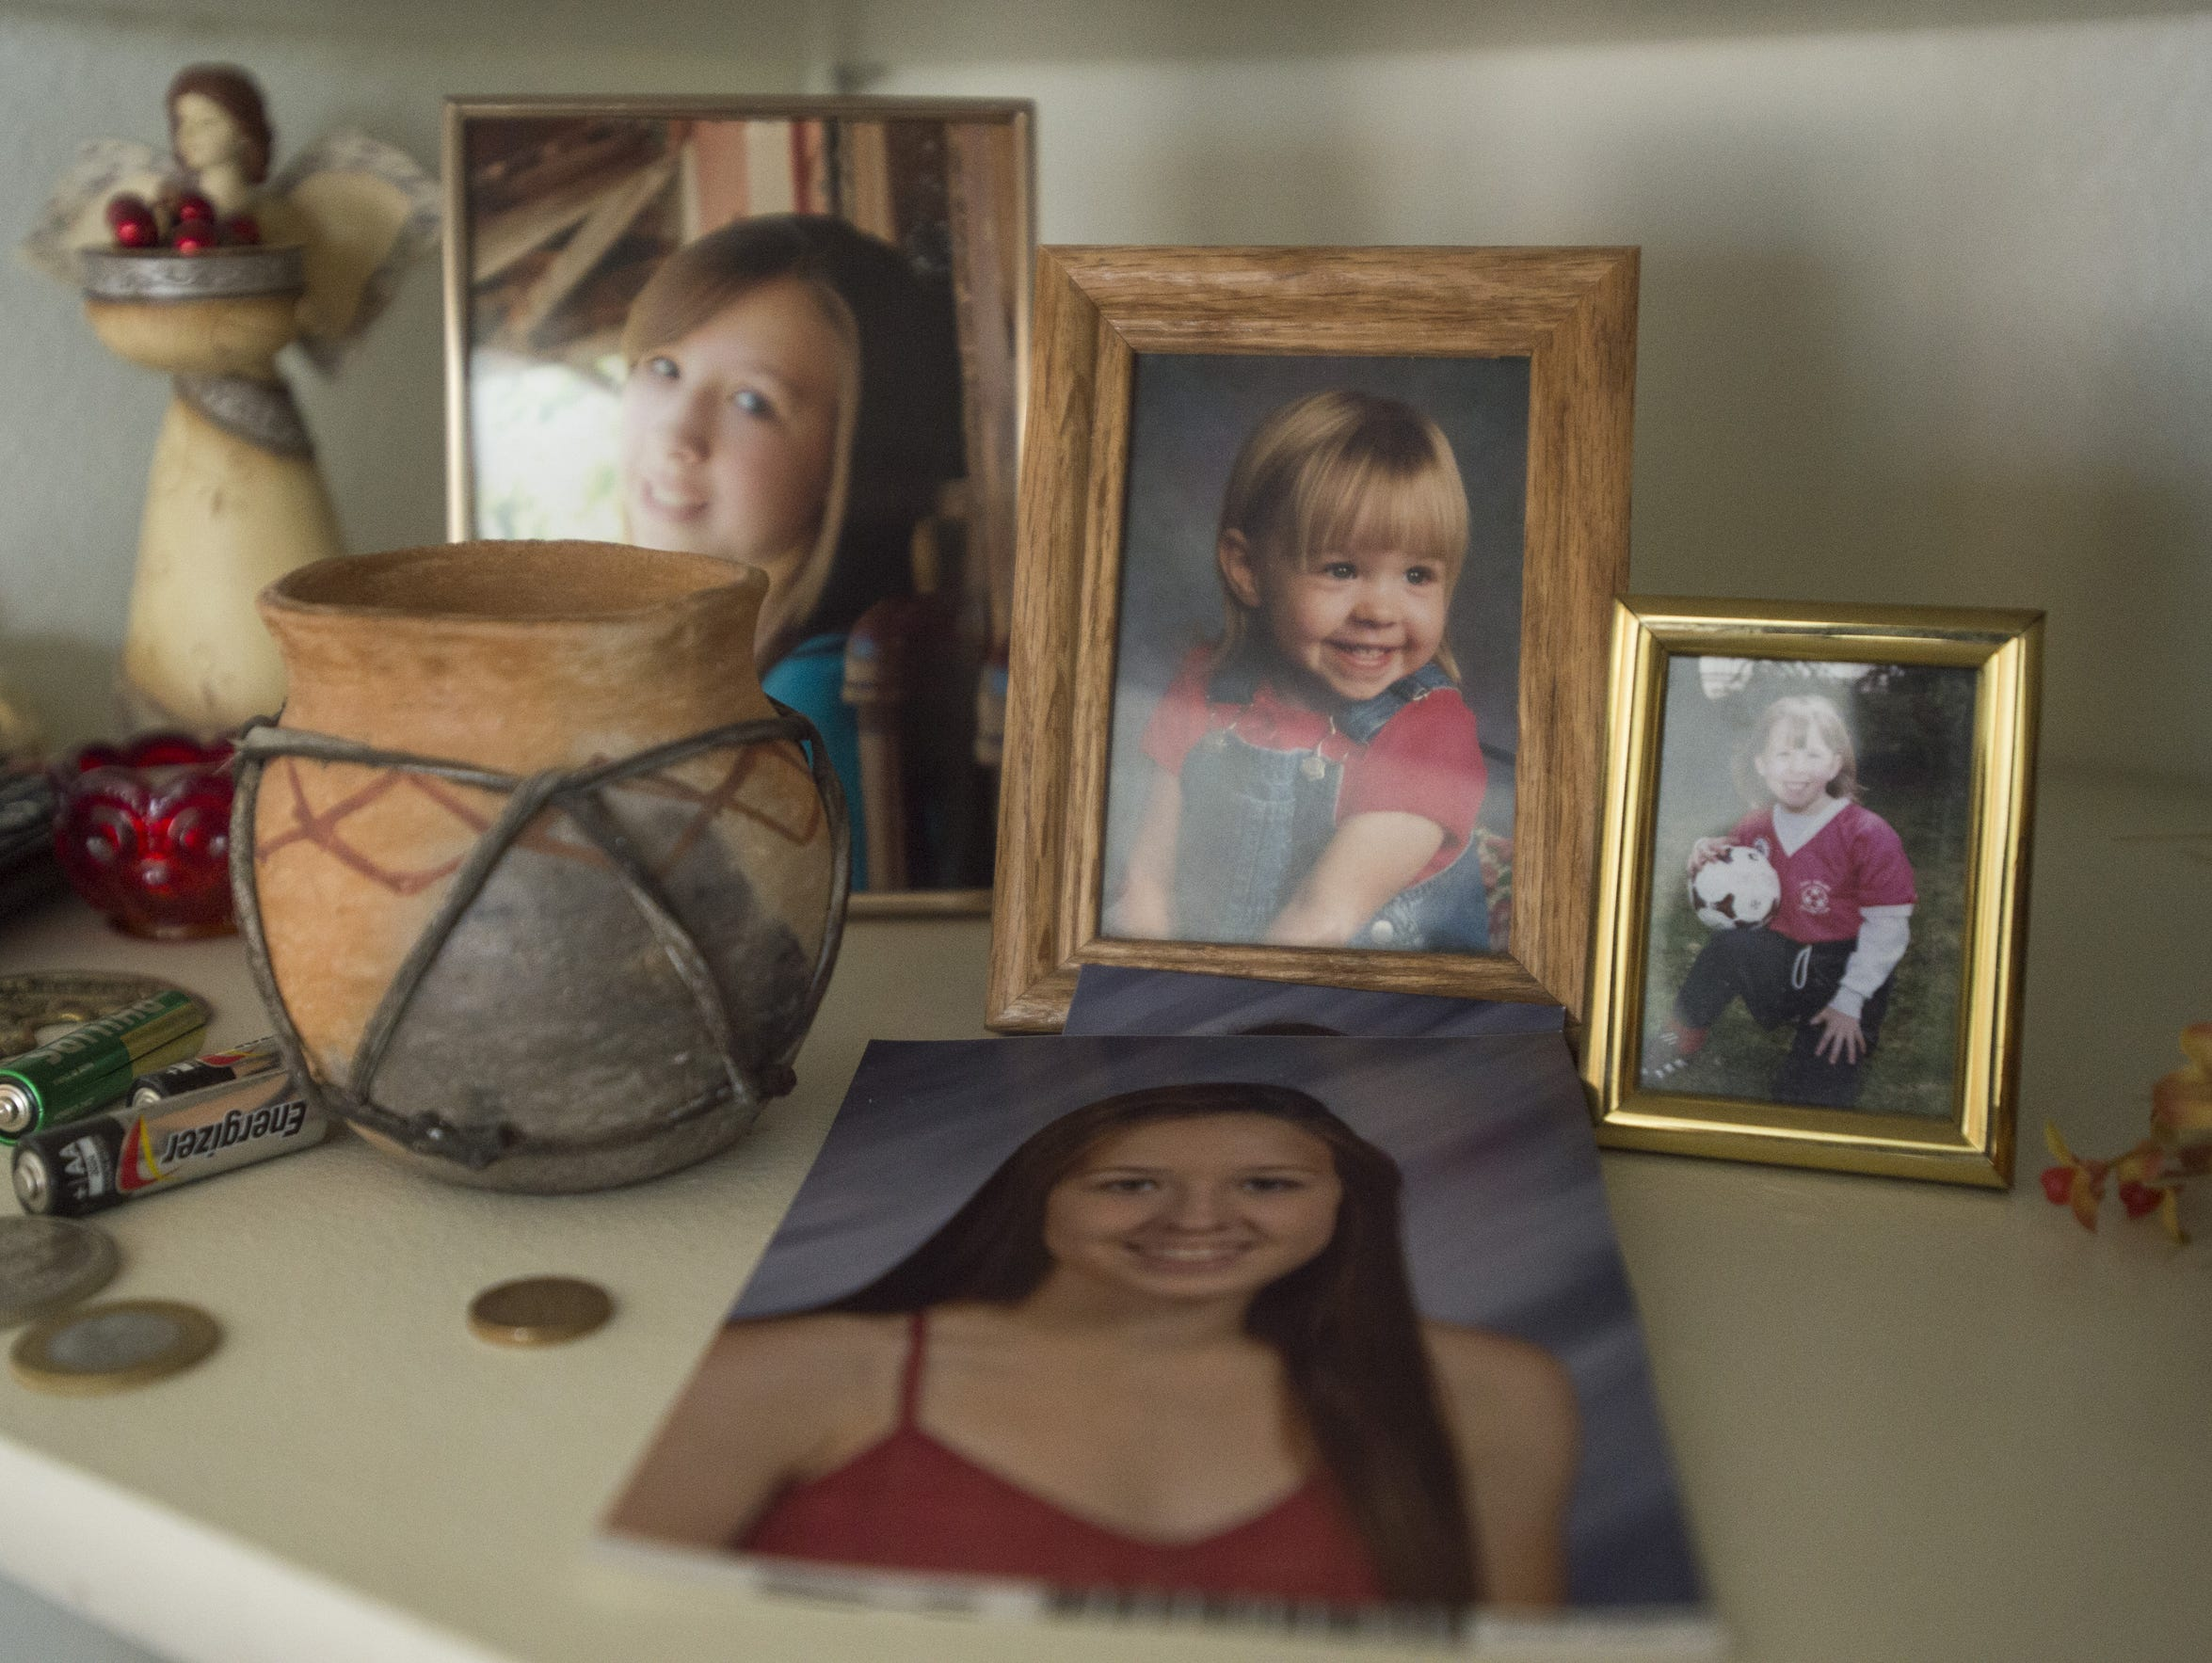 Pictures of grandchildren and family member line the